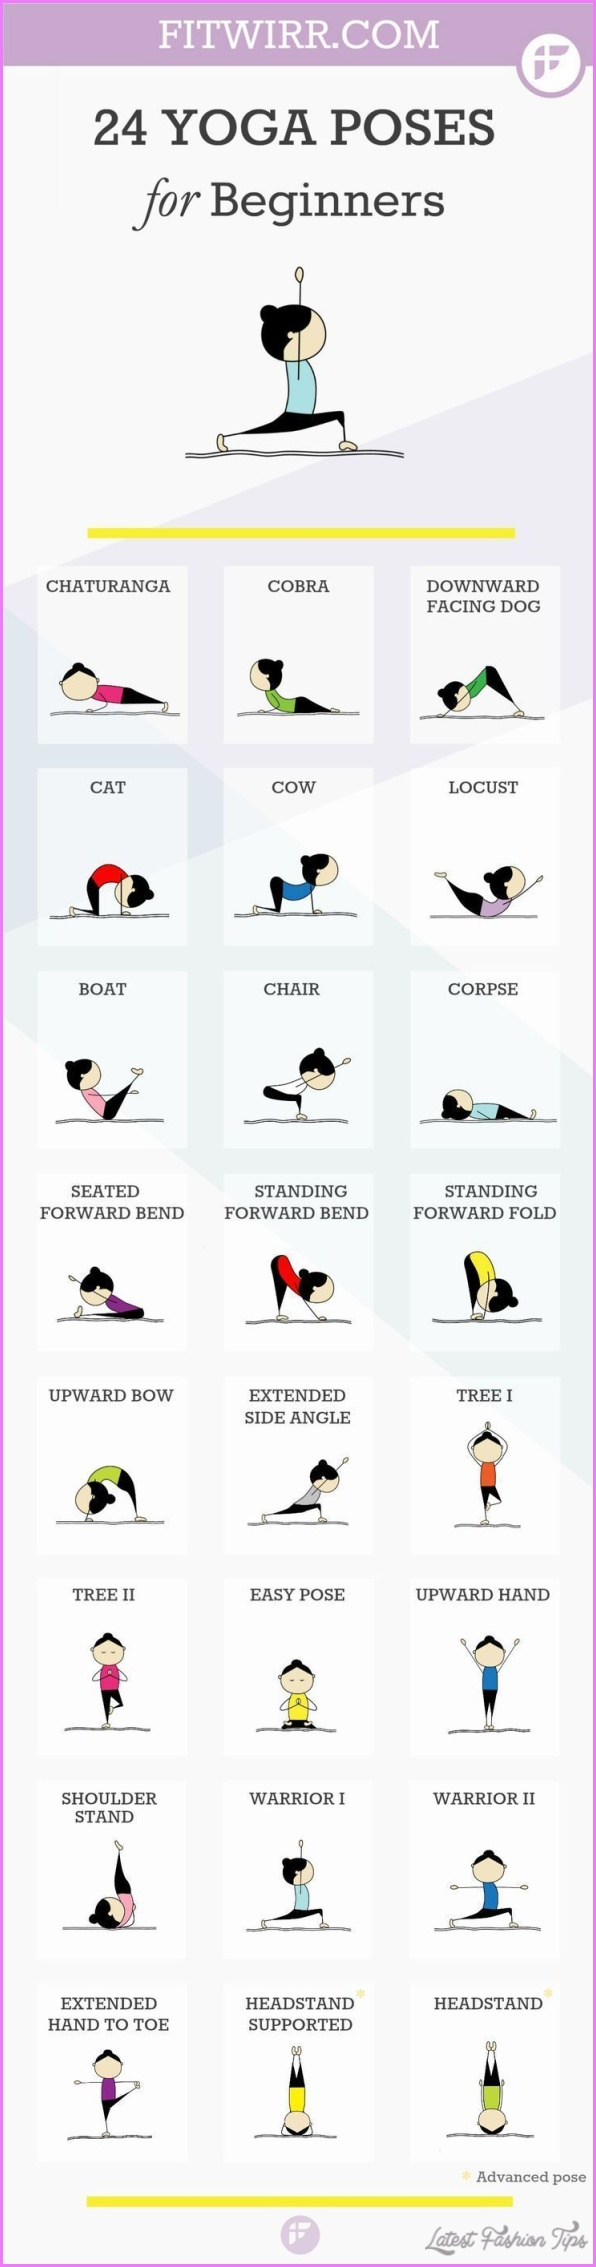 Yoga Poses For Beginners At Home_13.jpg